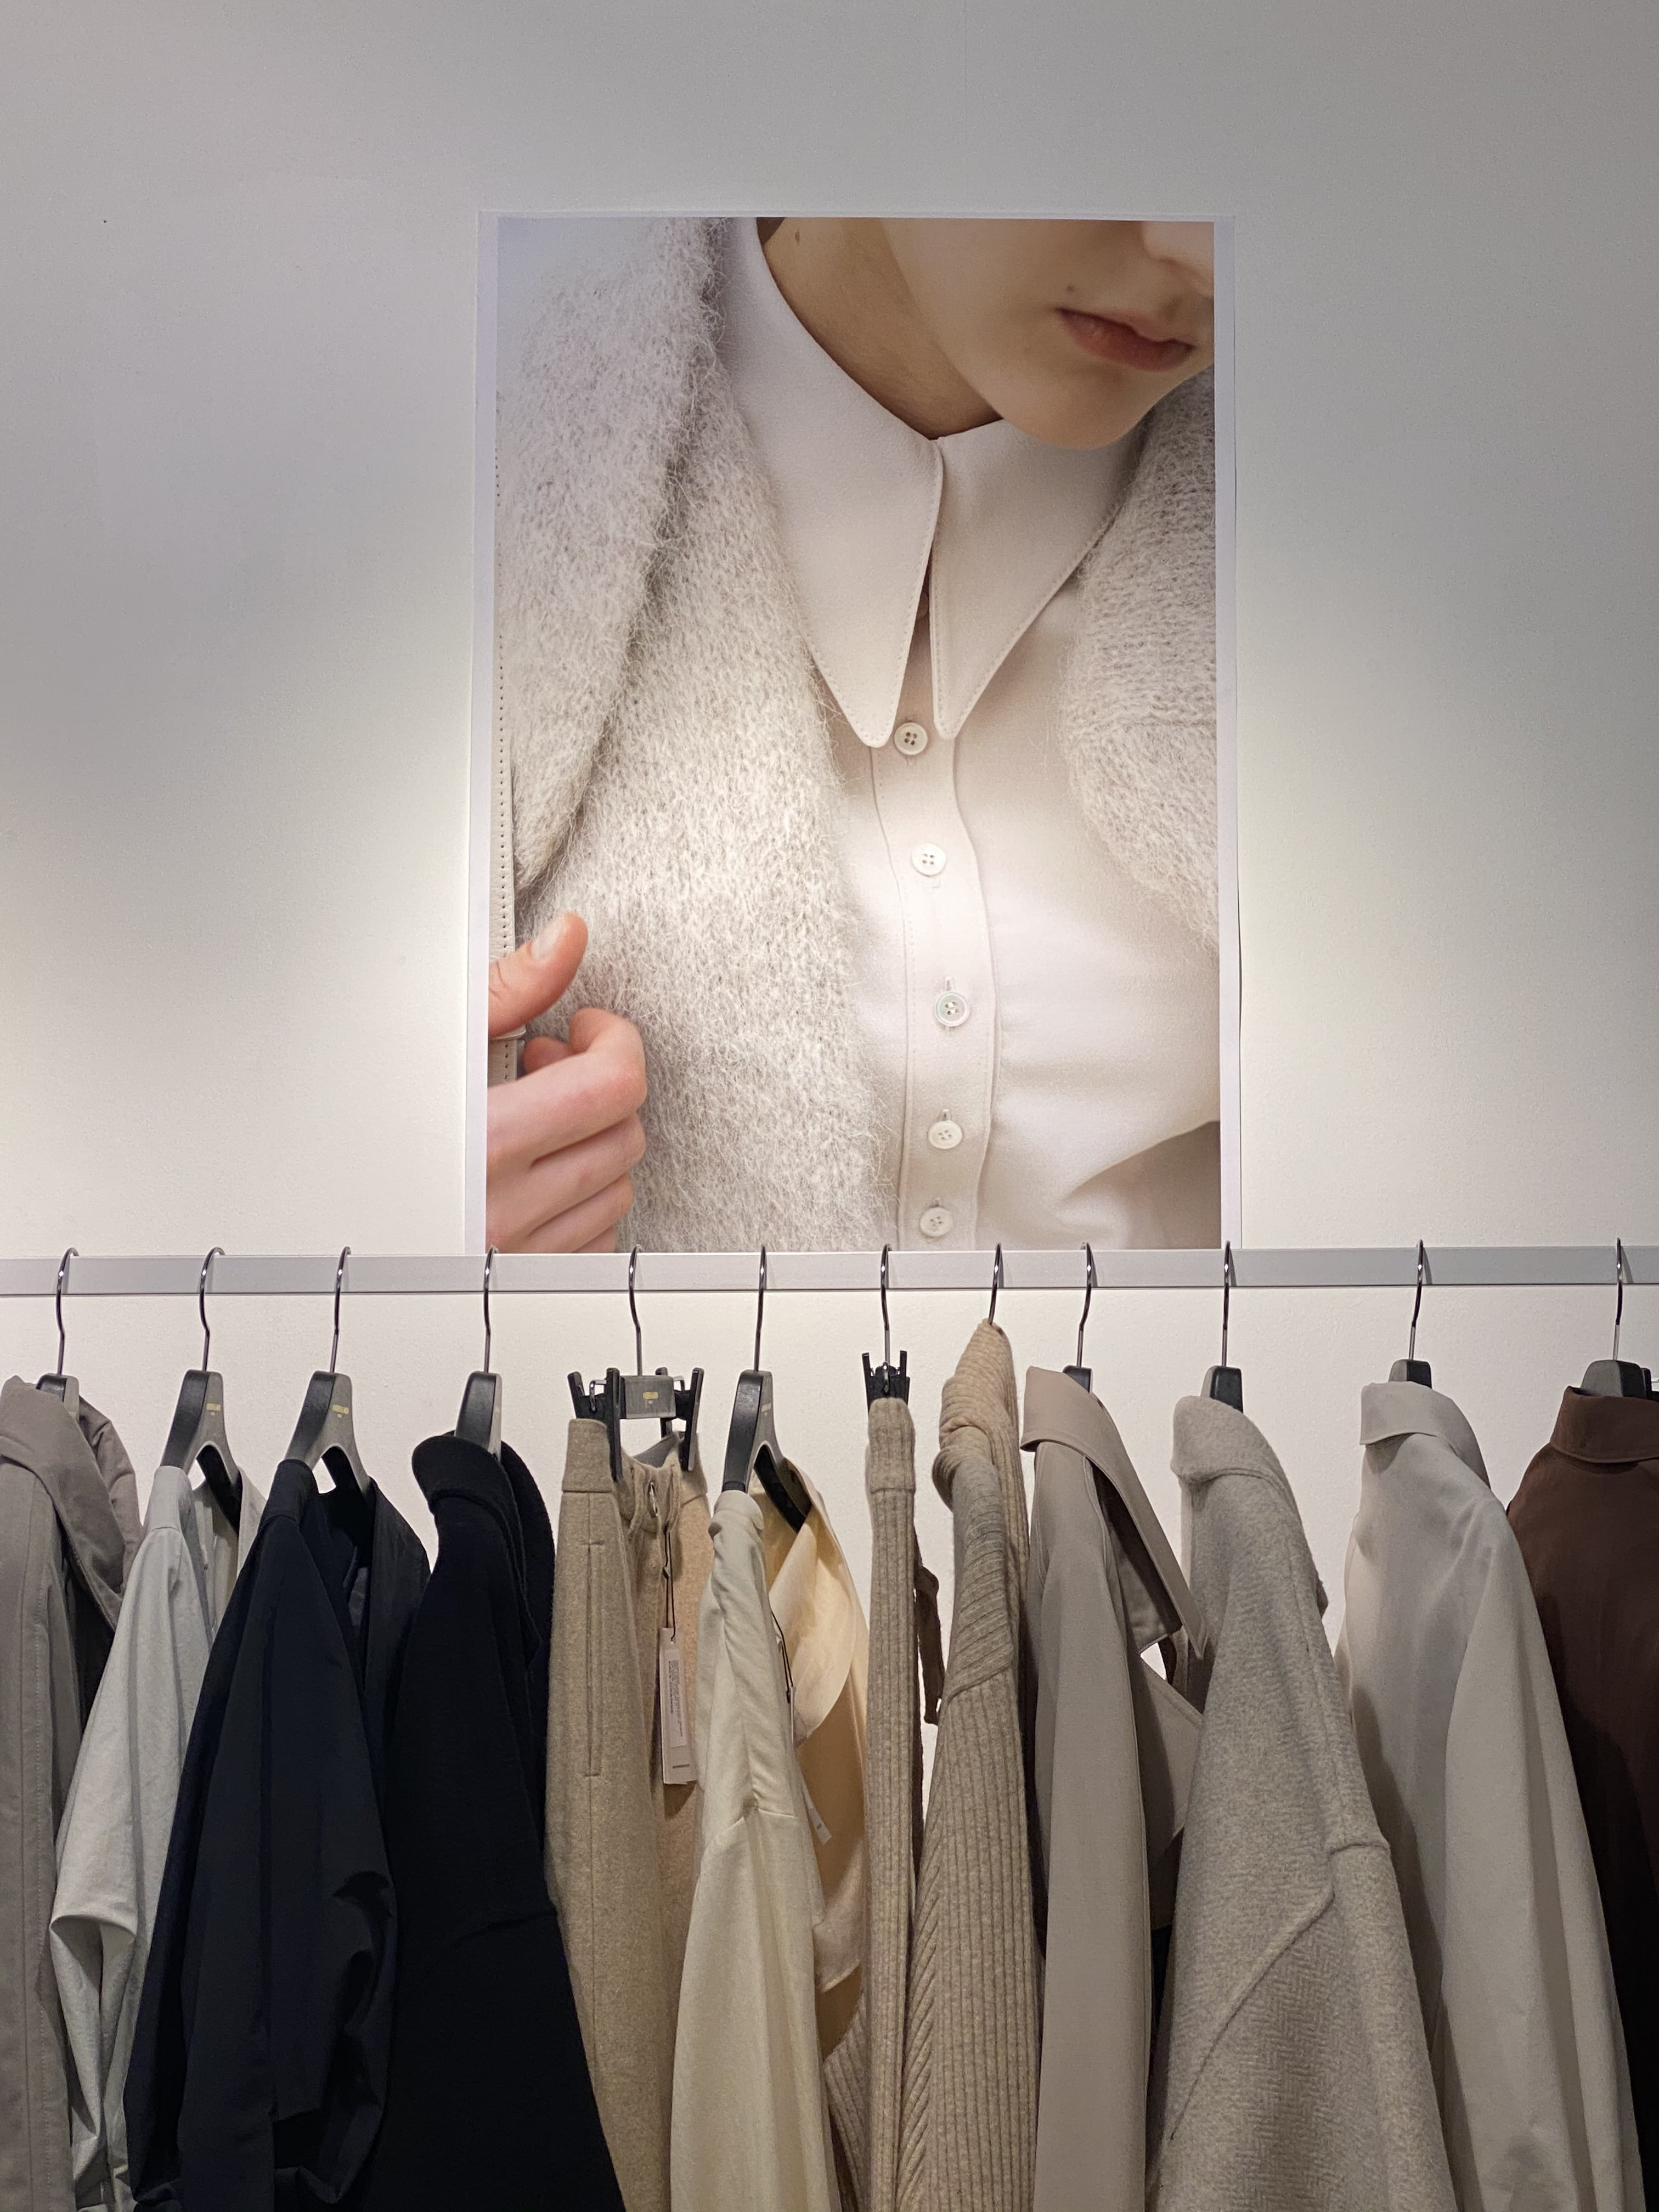 FW20 EXHIBITION IN PARIS